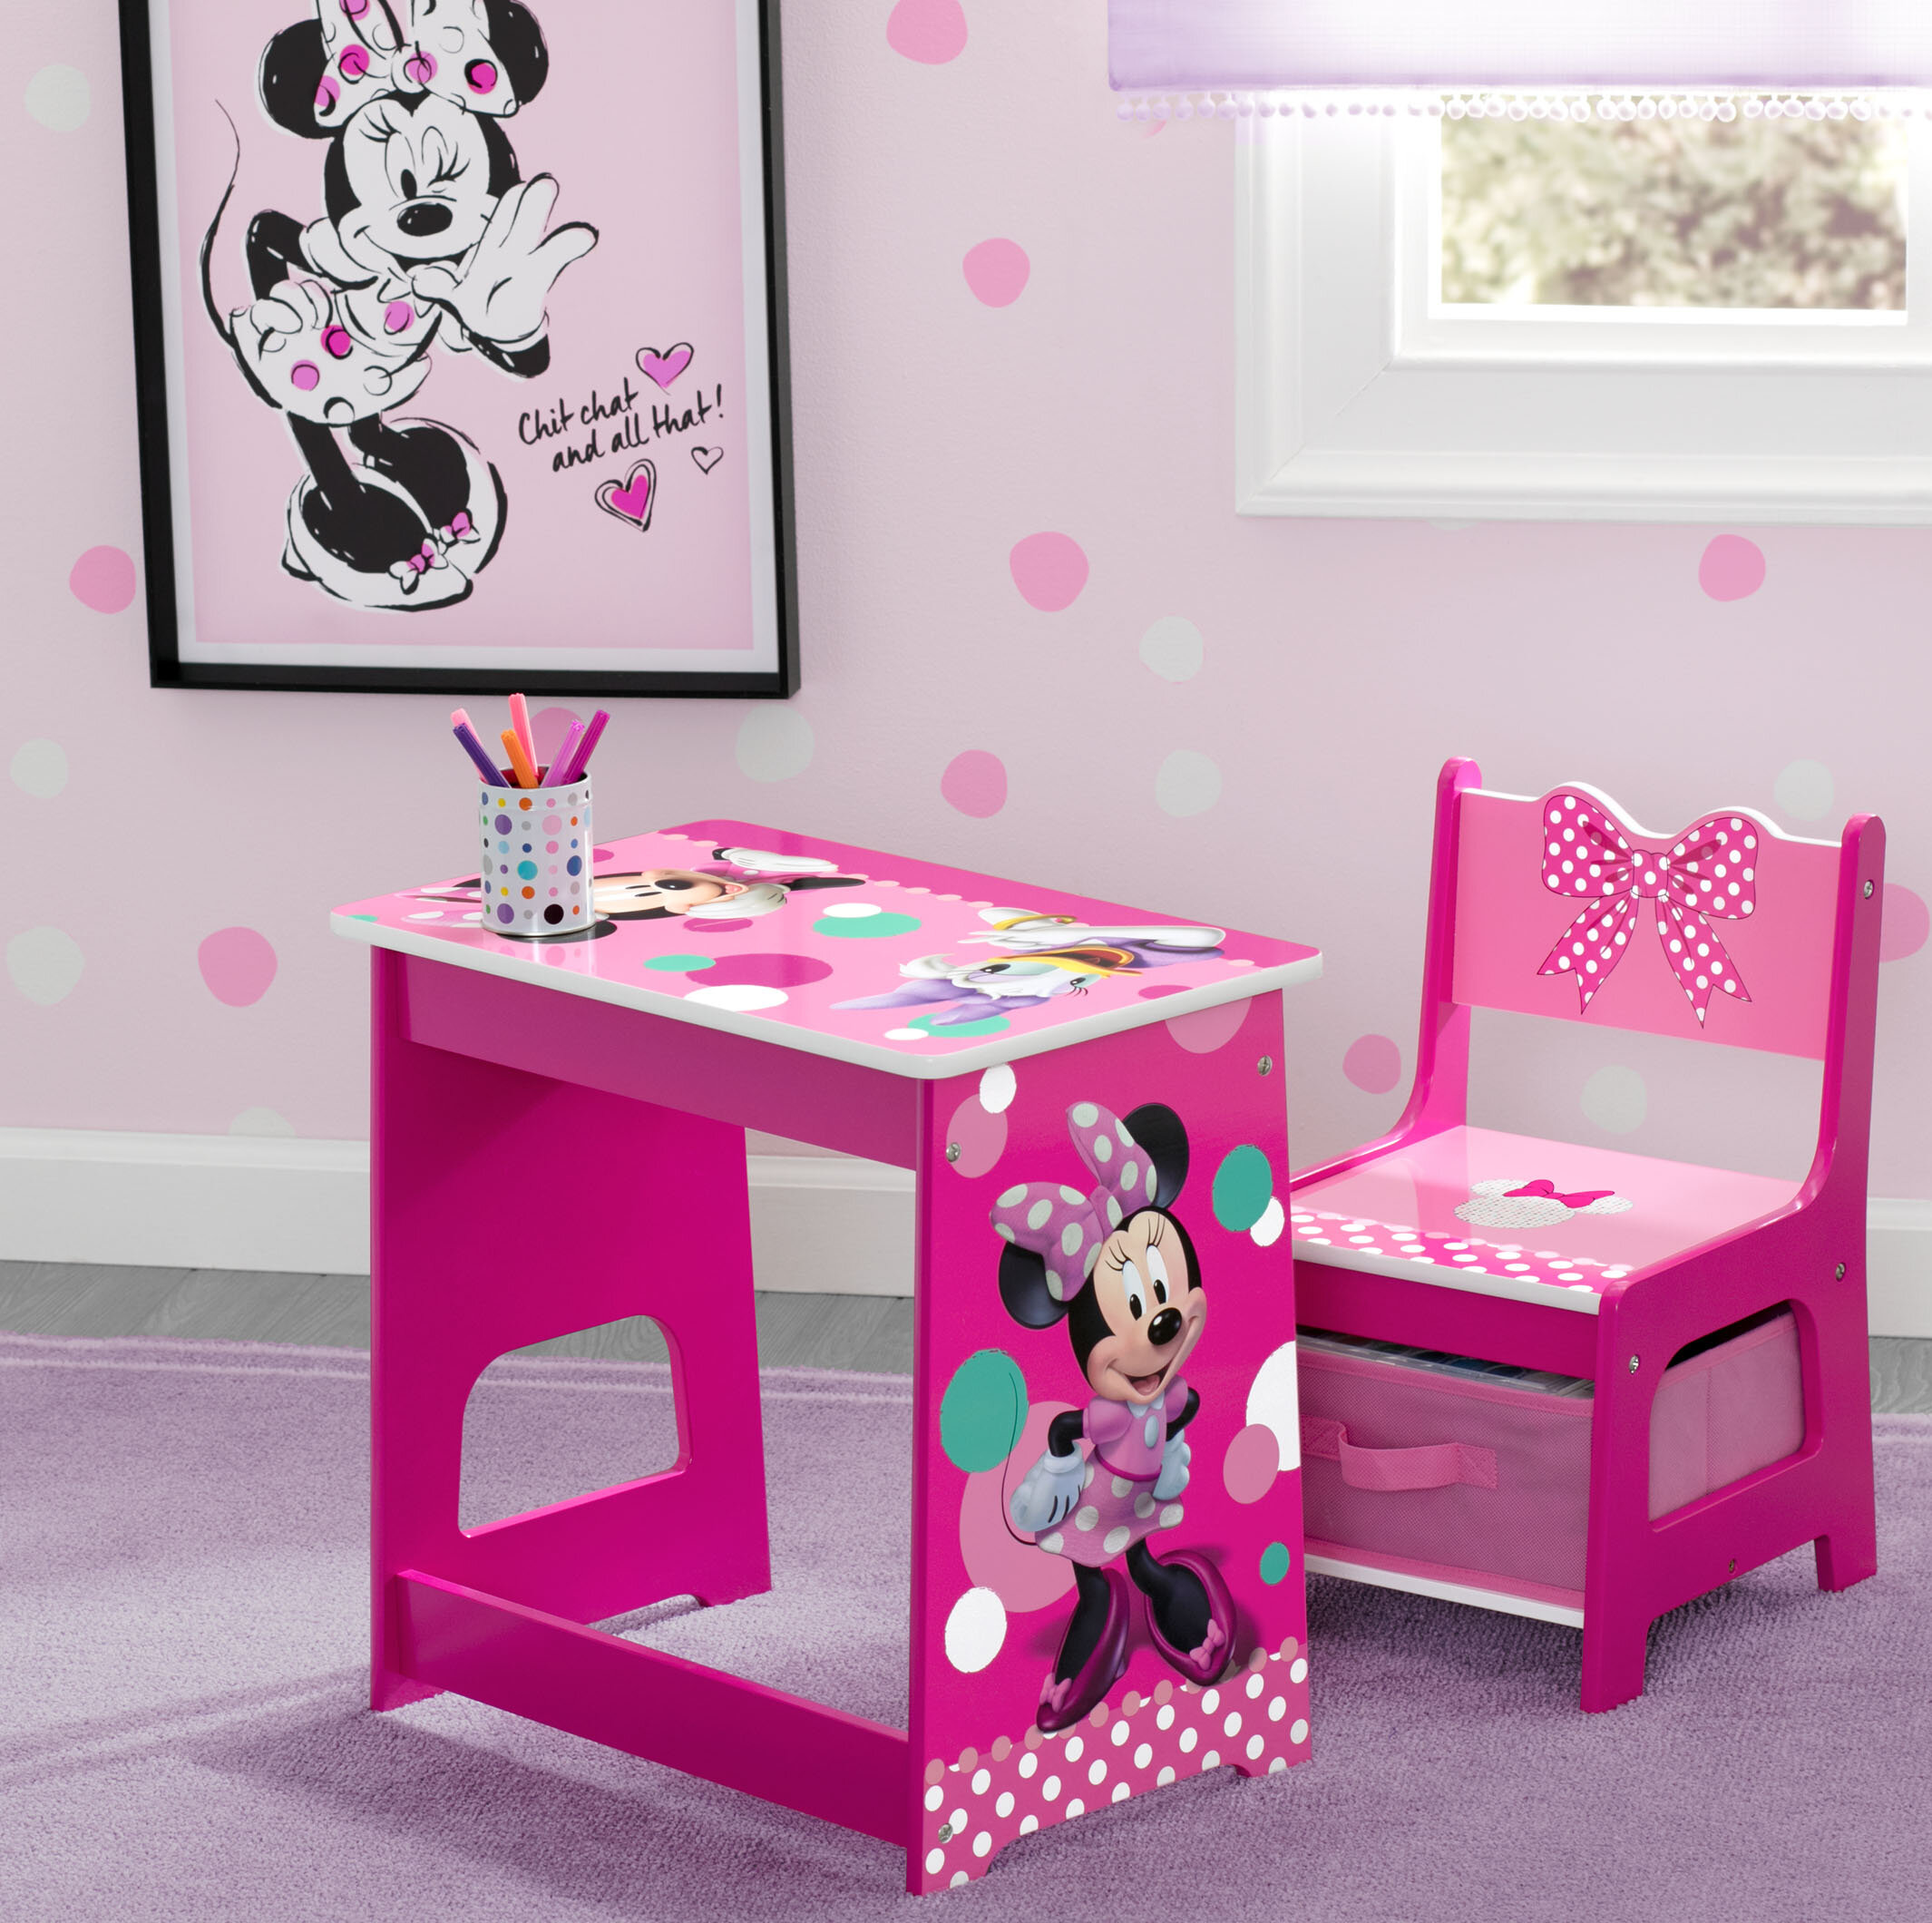 Superb Disney Minnie Mouse Kids 2 Piece Activity Table And Chair Set Pdpeps Interior Chair Design Pdpepsorg